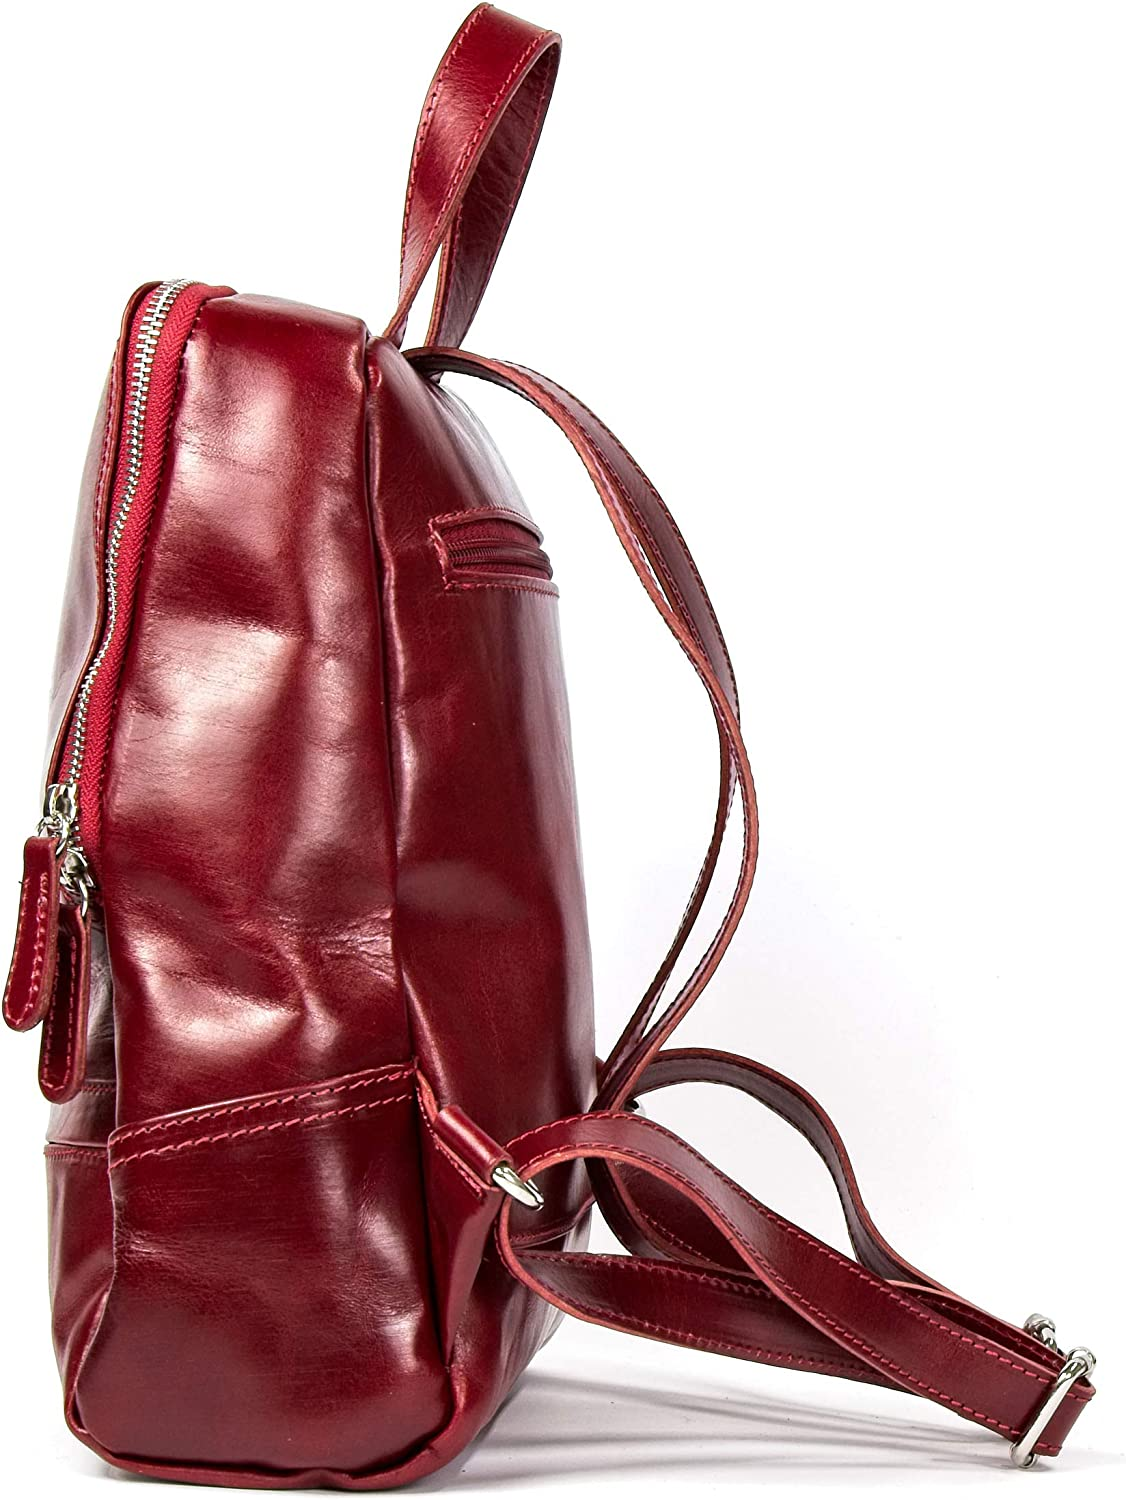 Woman Backpack in Genuine Leather, Casual Daypack, Leather, Style and Elegance of a Handicraft Made in Italy (), Light Brown (Brown) - b_8055002606769 Red